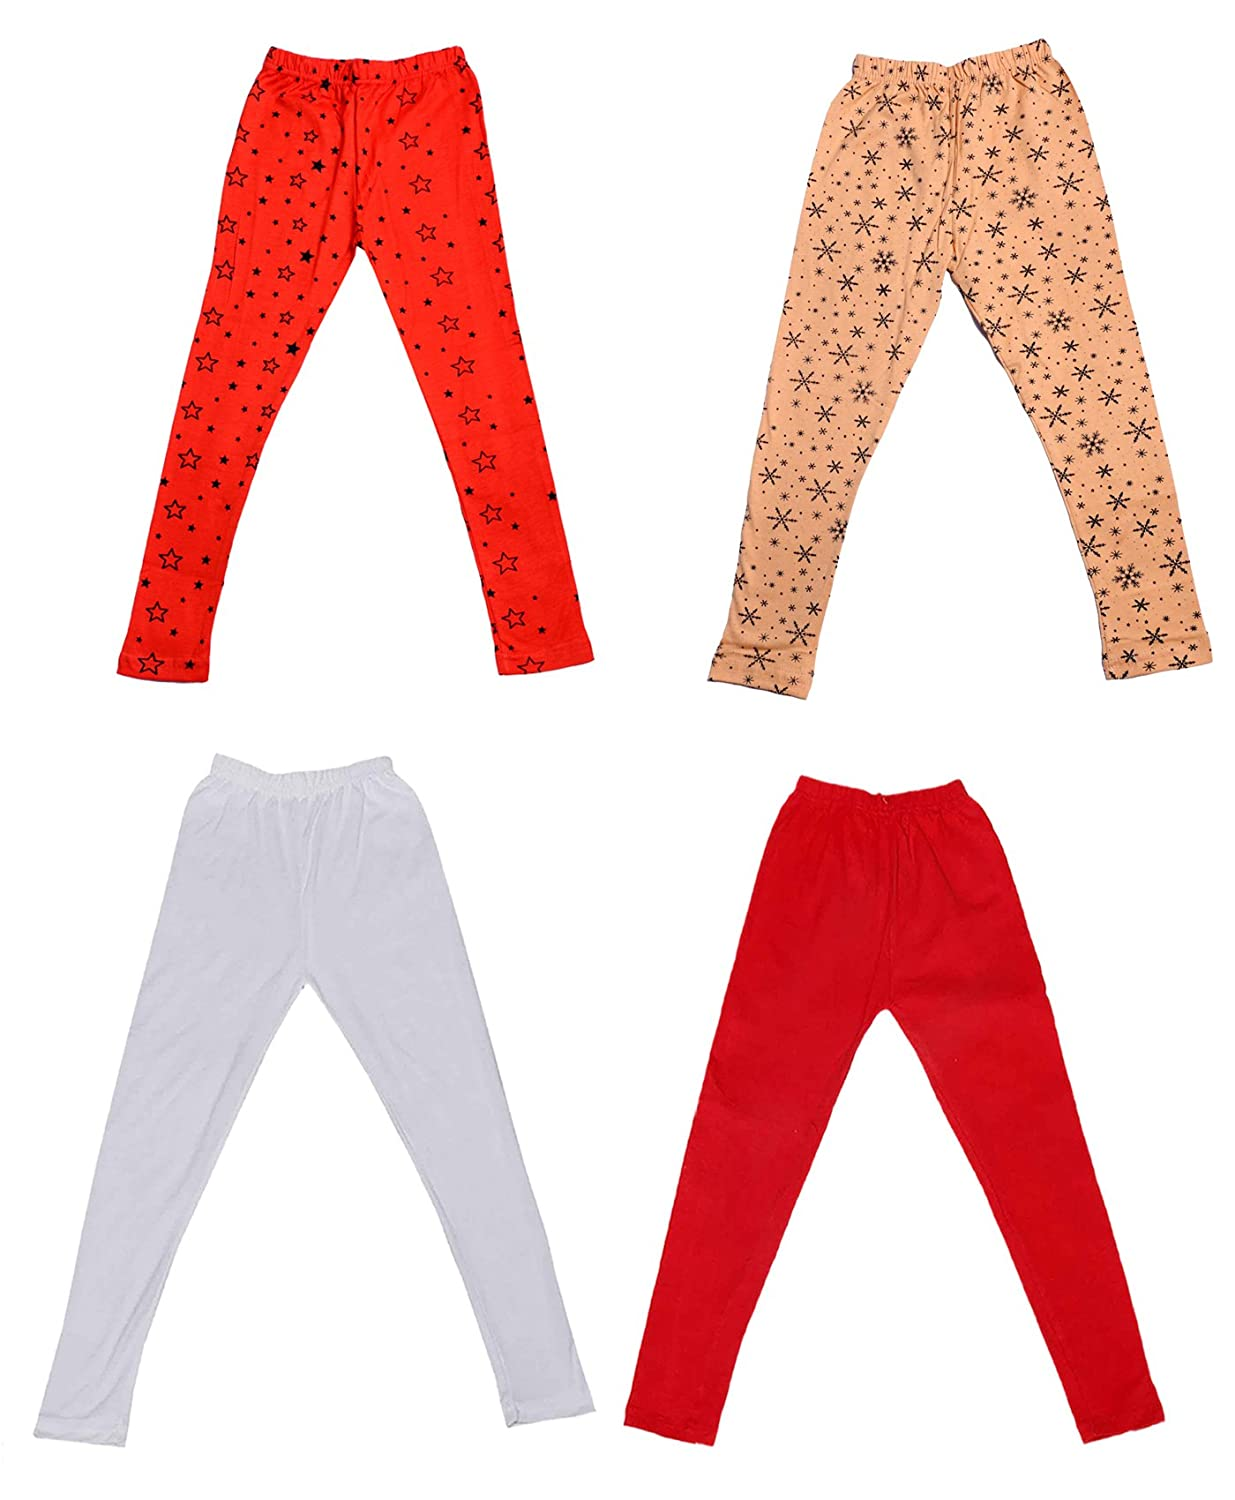 Pack Of 4 and 2 Cotton Printed Legging Pants /_Multicolor/_Size-1-3 Years/_71403041619-IW-P4-22 Indistar Girls 2 Cotton Solid Legging Pants